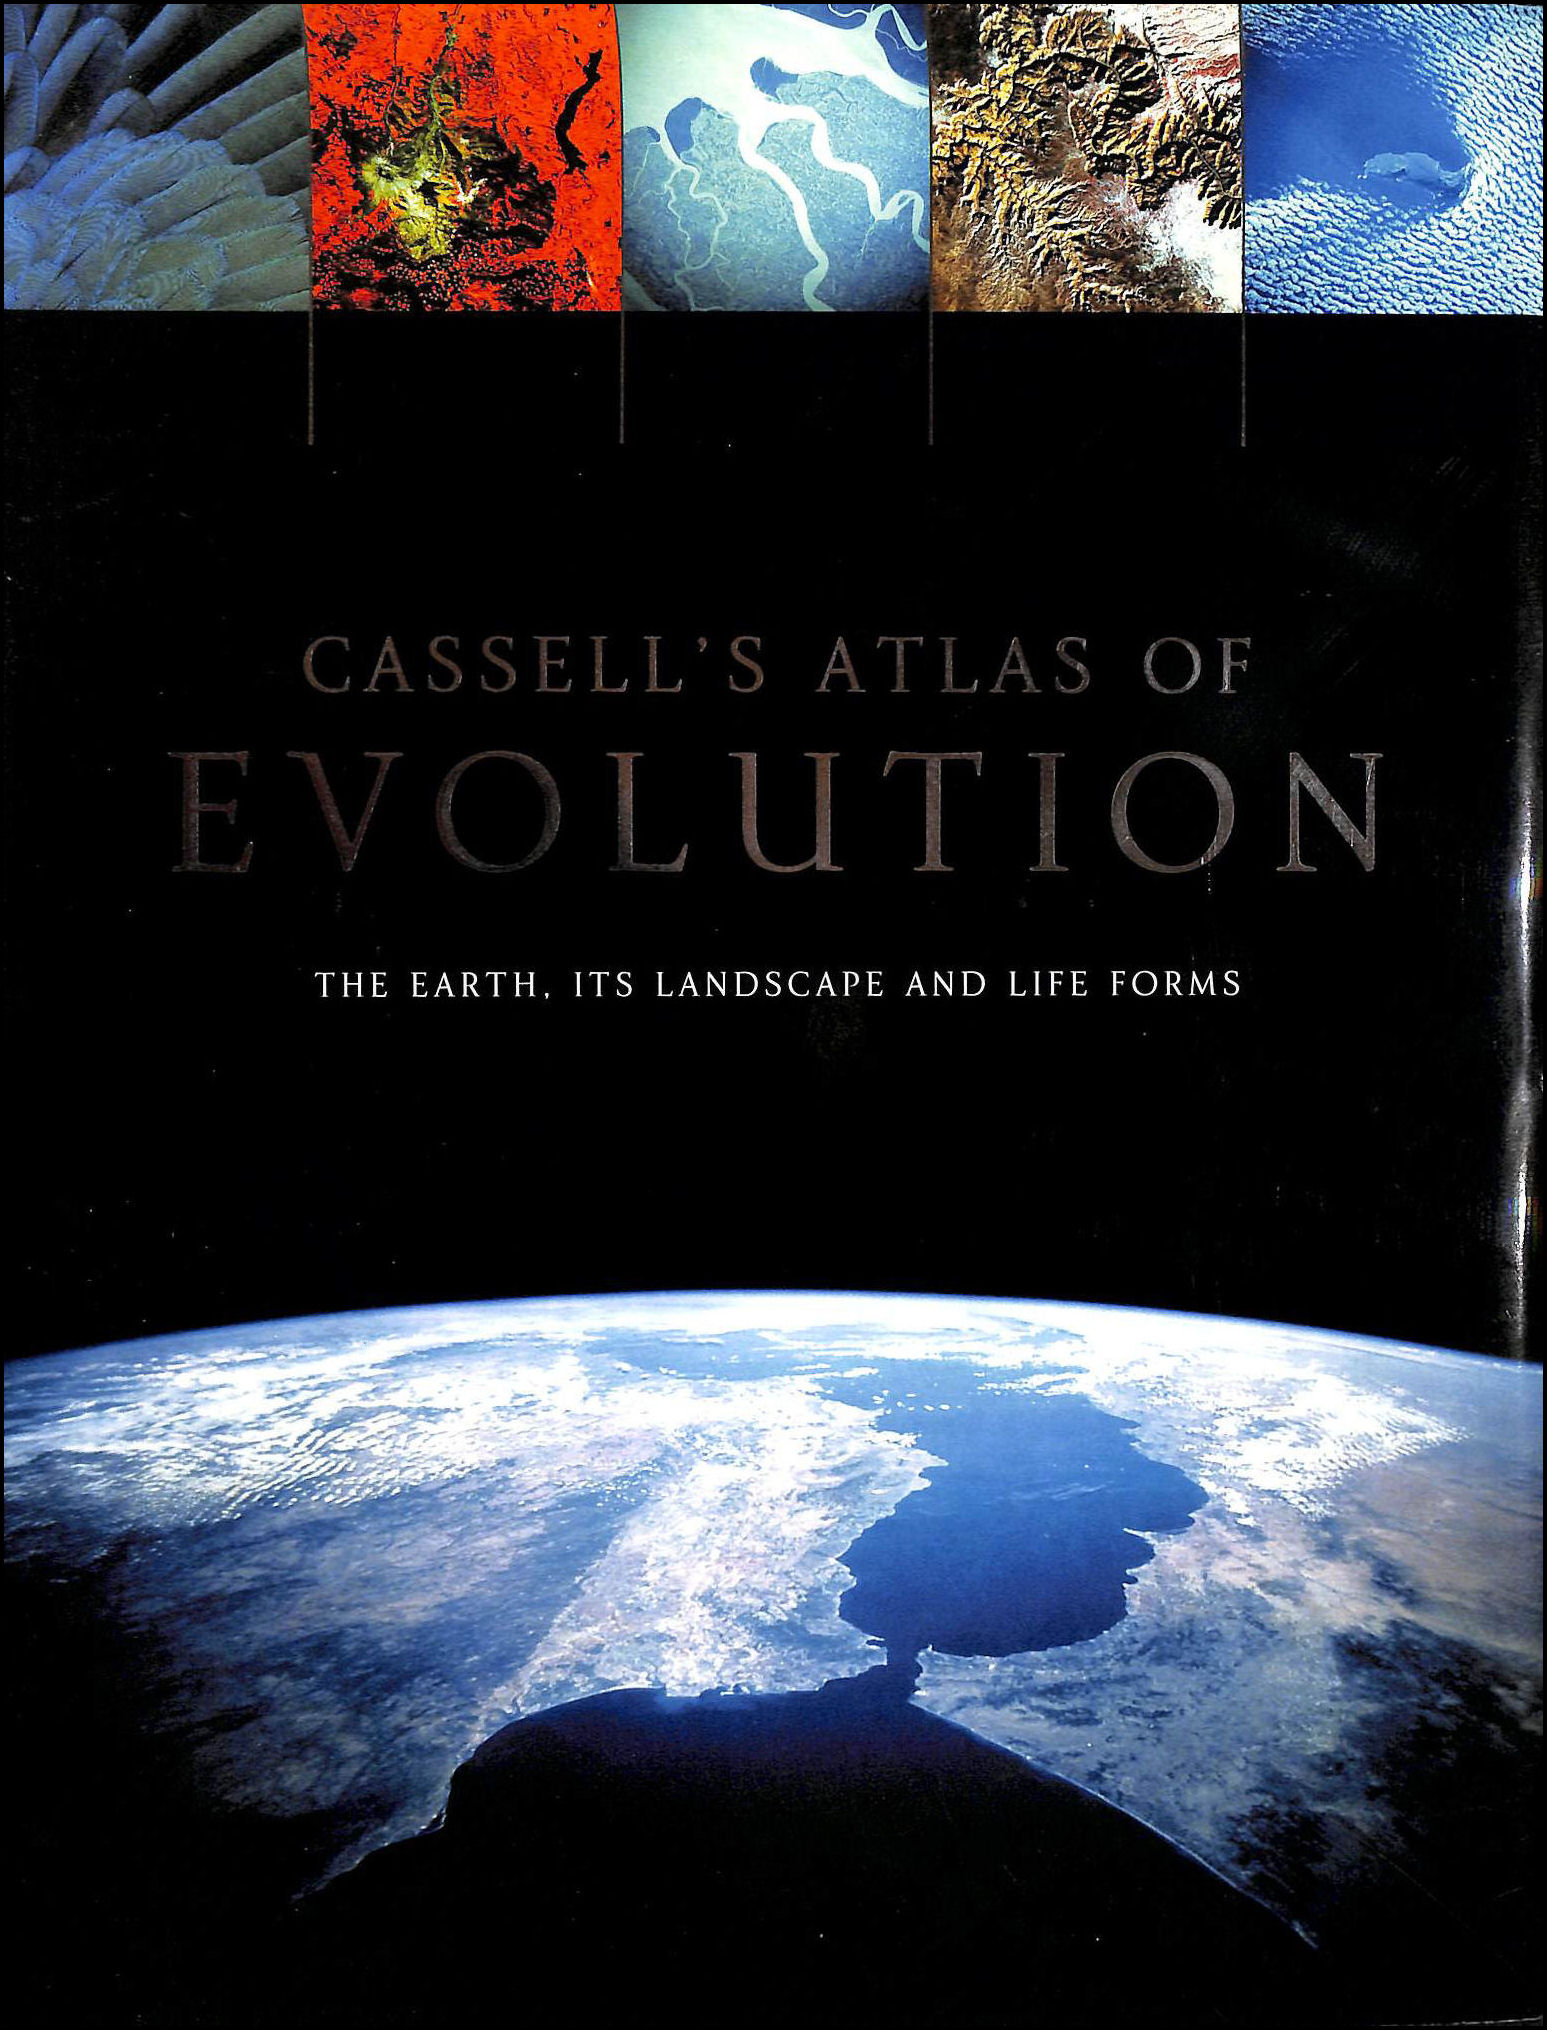 Cassell's Atlas of Evolution: The Earth, its Landscape, and Life Forms, Andromeda